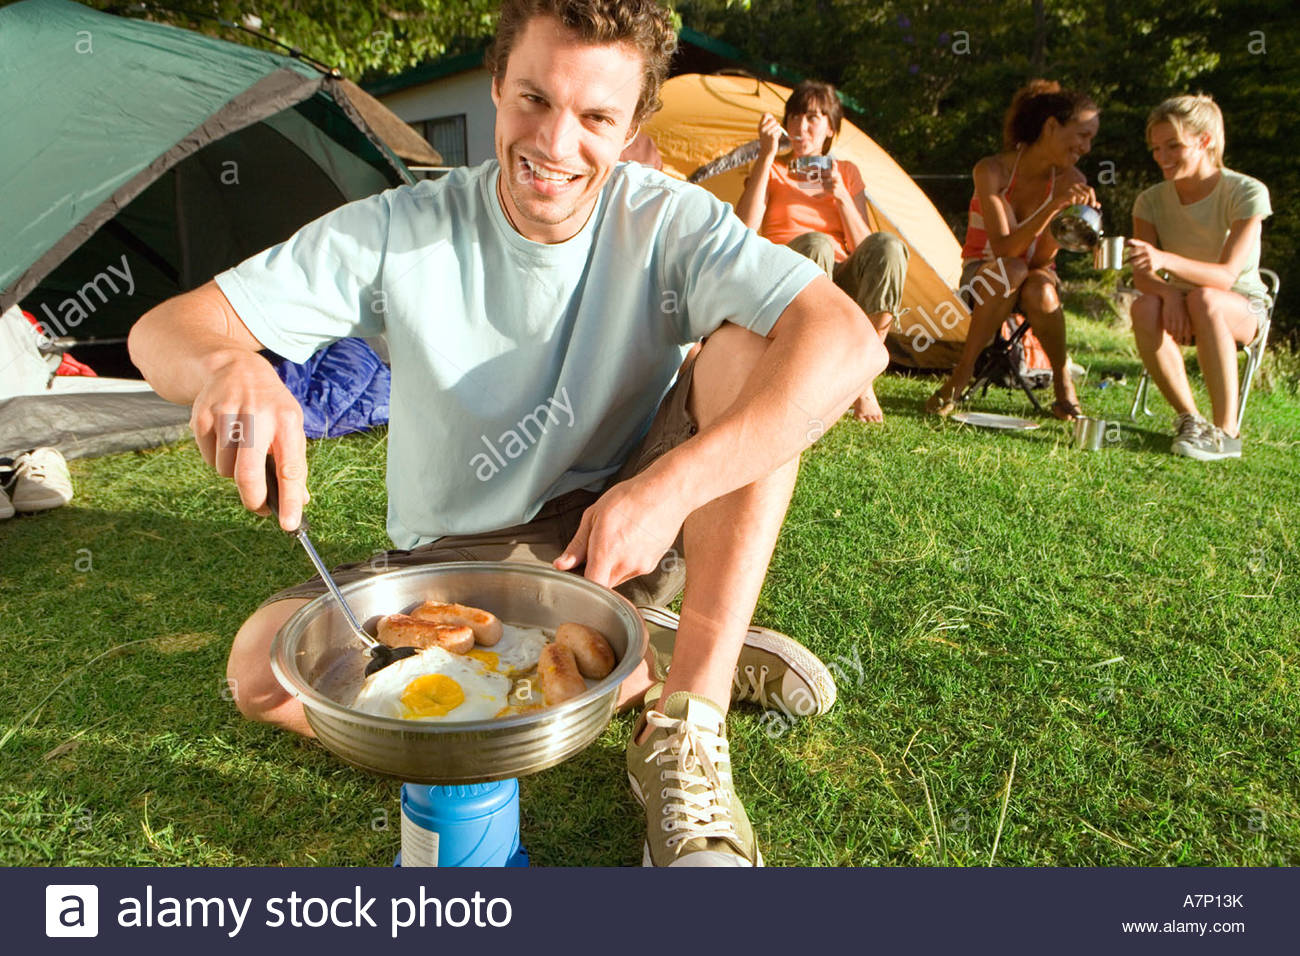 Young adults eating fried breakfast beside tents focus on man with spatula cooking on camping stove portrait tilt Stock Photo